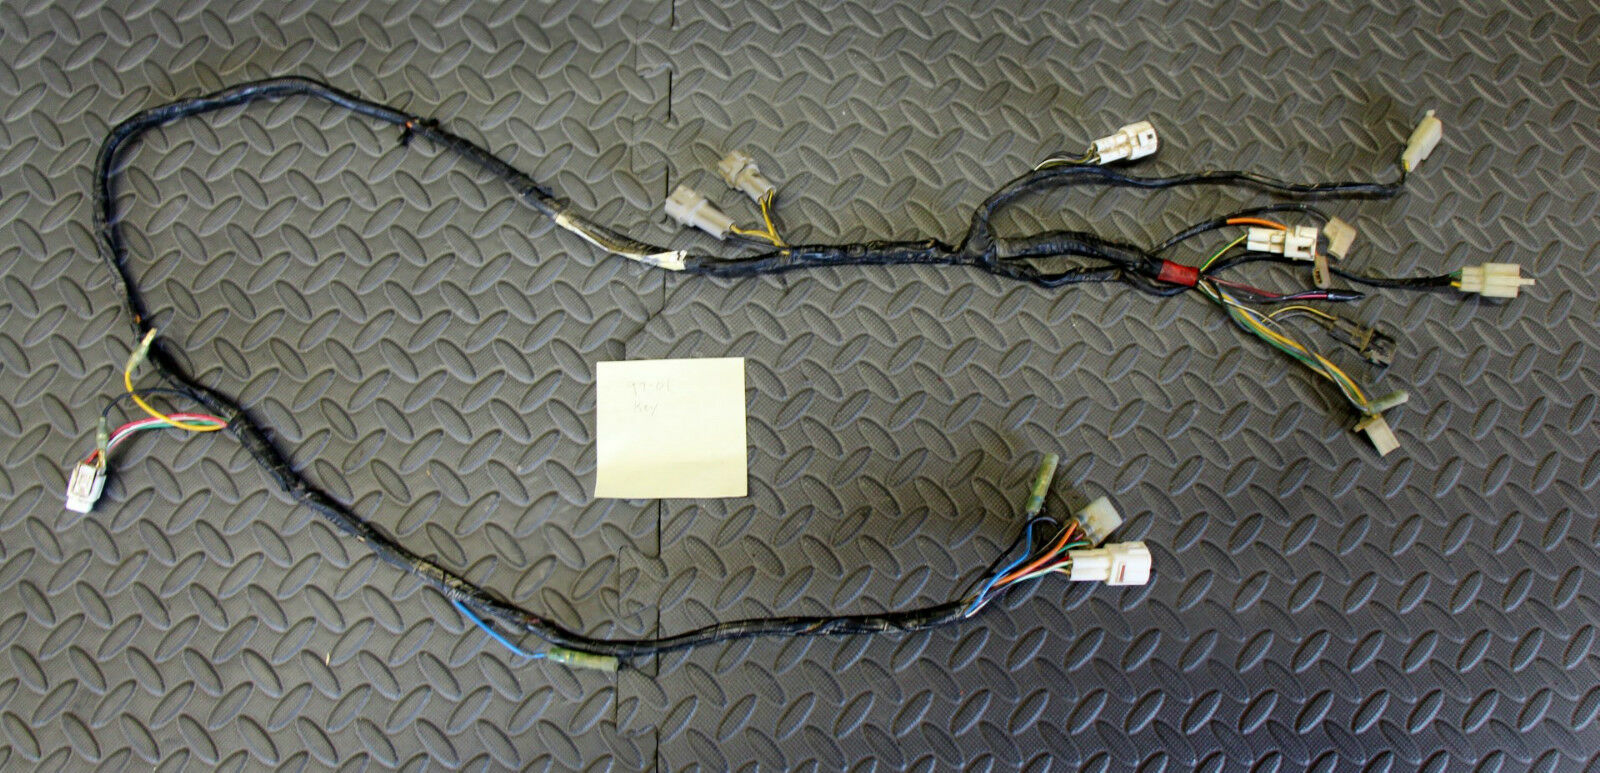 89 Banshee Wiring Harness Solutions Yamaha Diagram 1997 2001 Loom Clear Cdi Hardwired